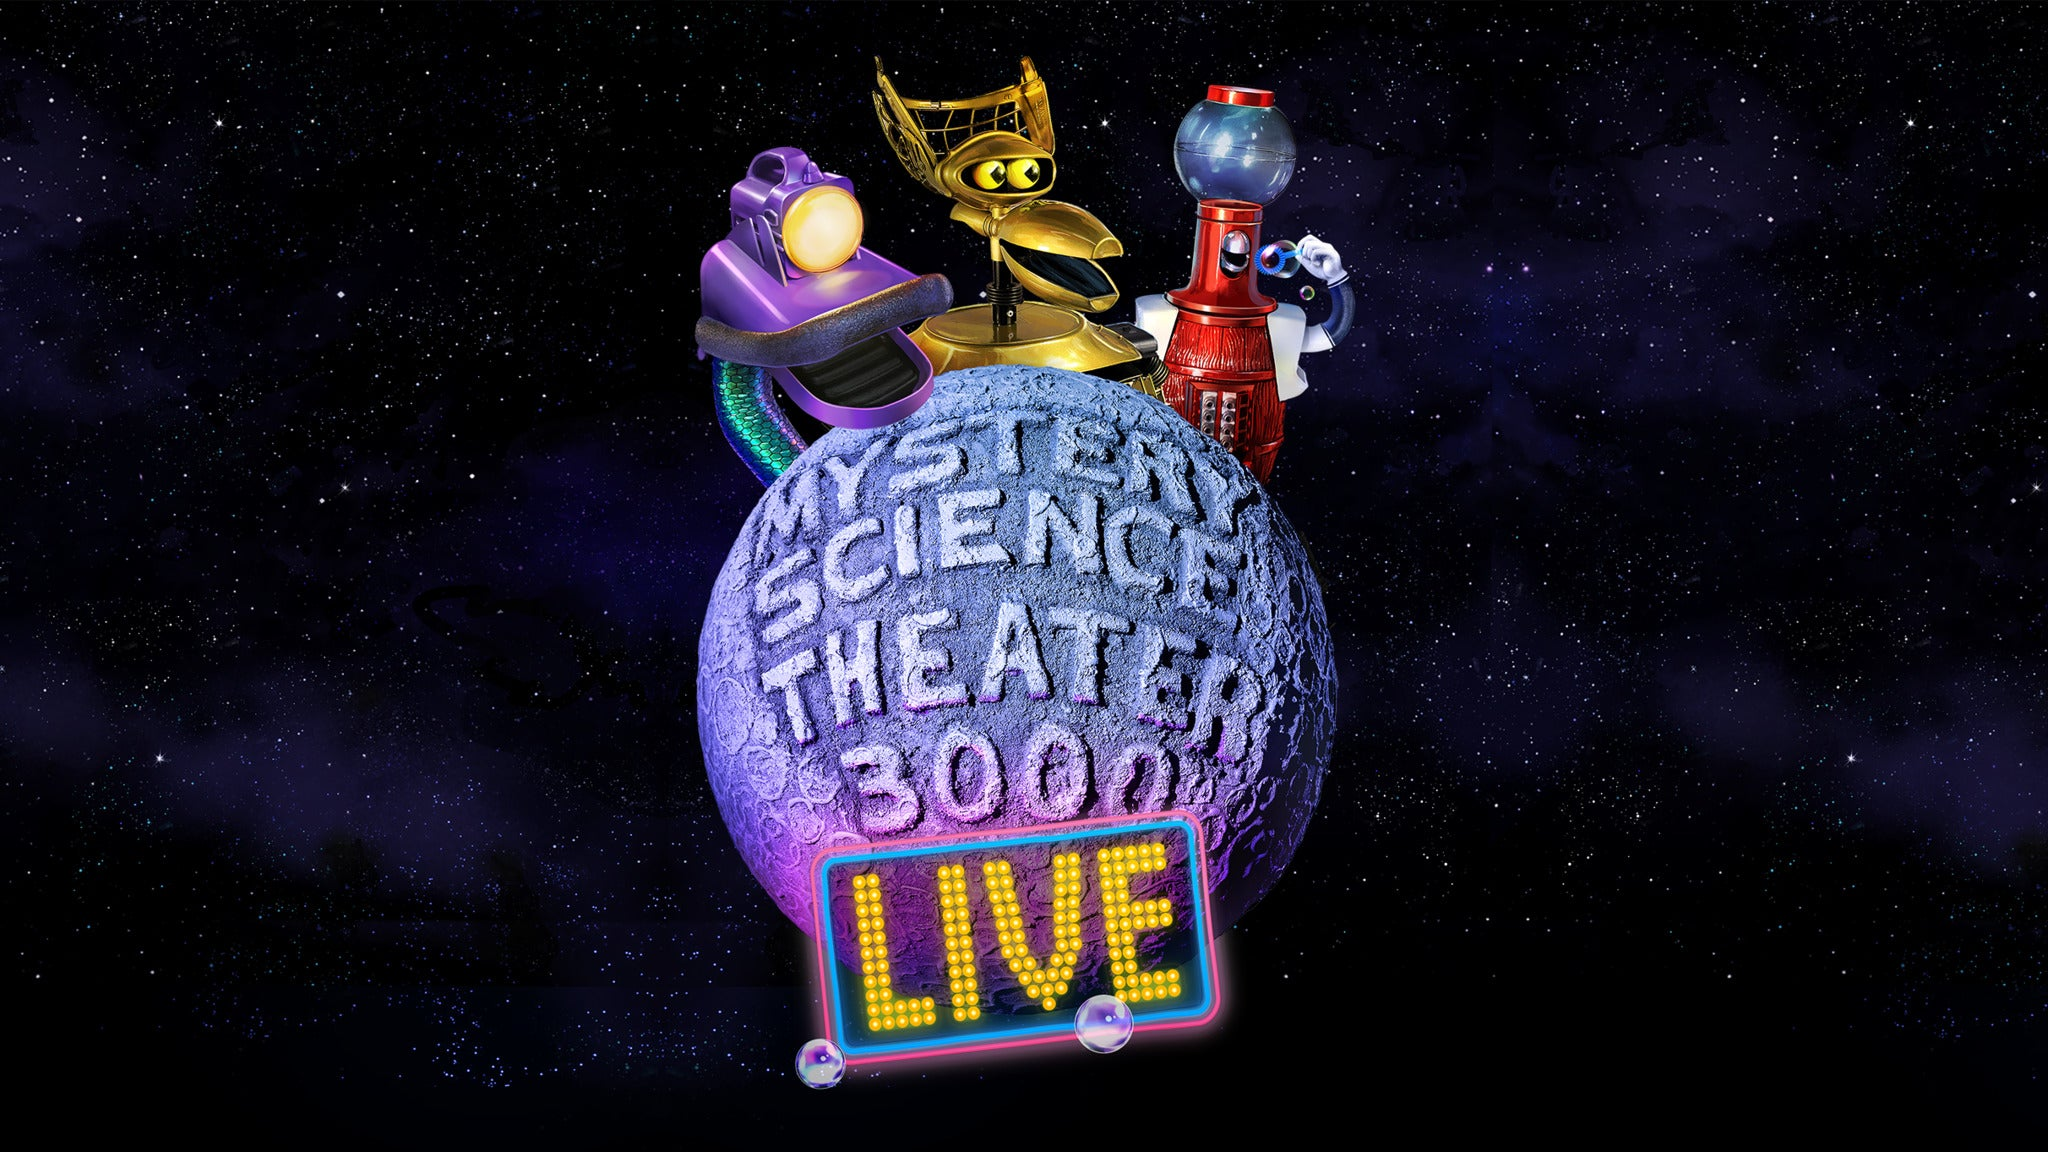 Mystery Science Theater 3000 Live! Time Bubble Tour